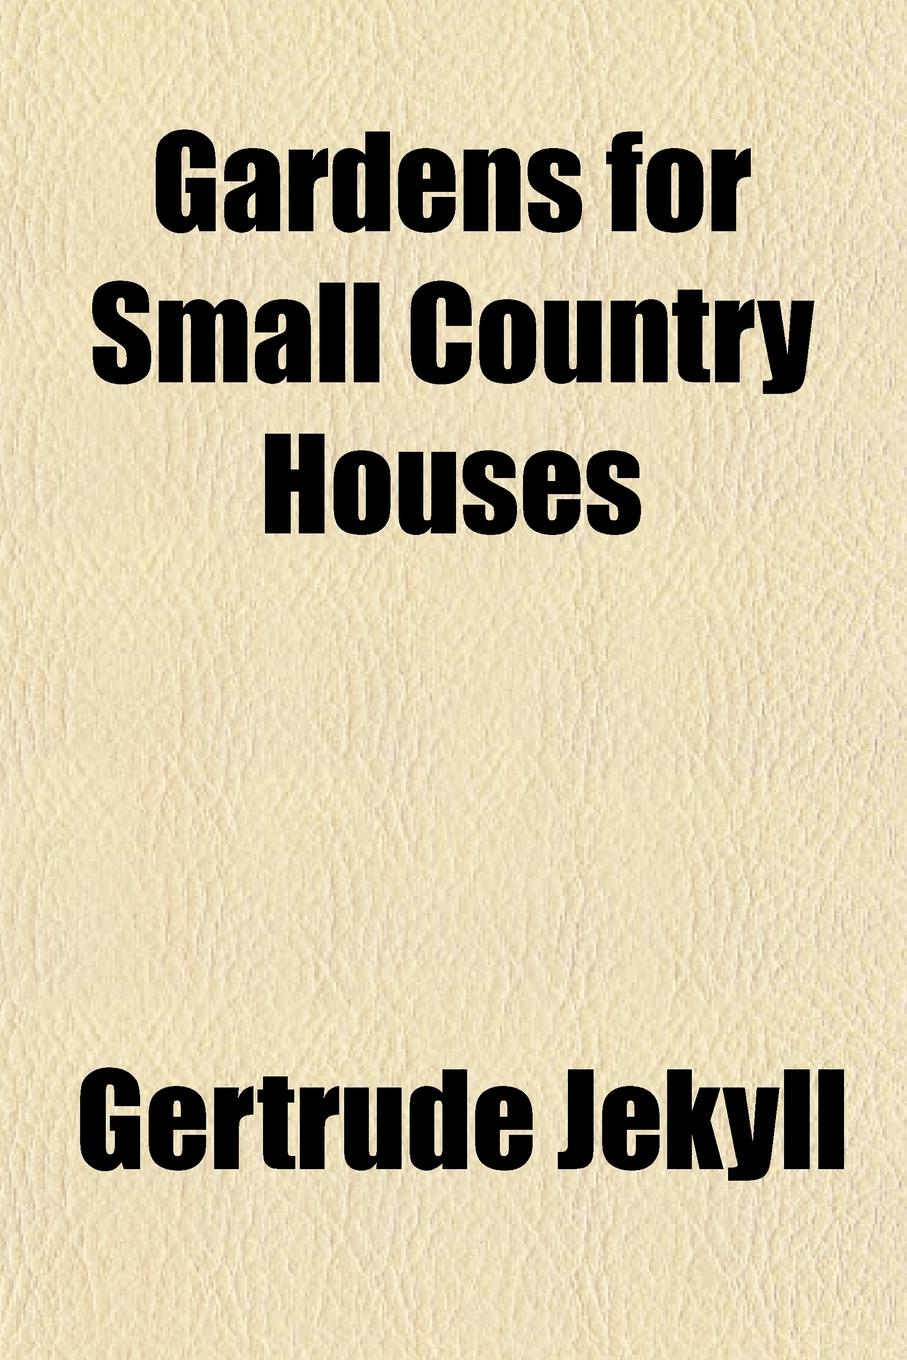 Gertrude Jekyll Gardens for Small Country Houses free shipping kayipht cm400ha1 24h can directly buy or contact the seller